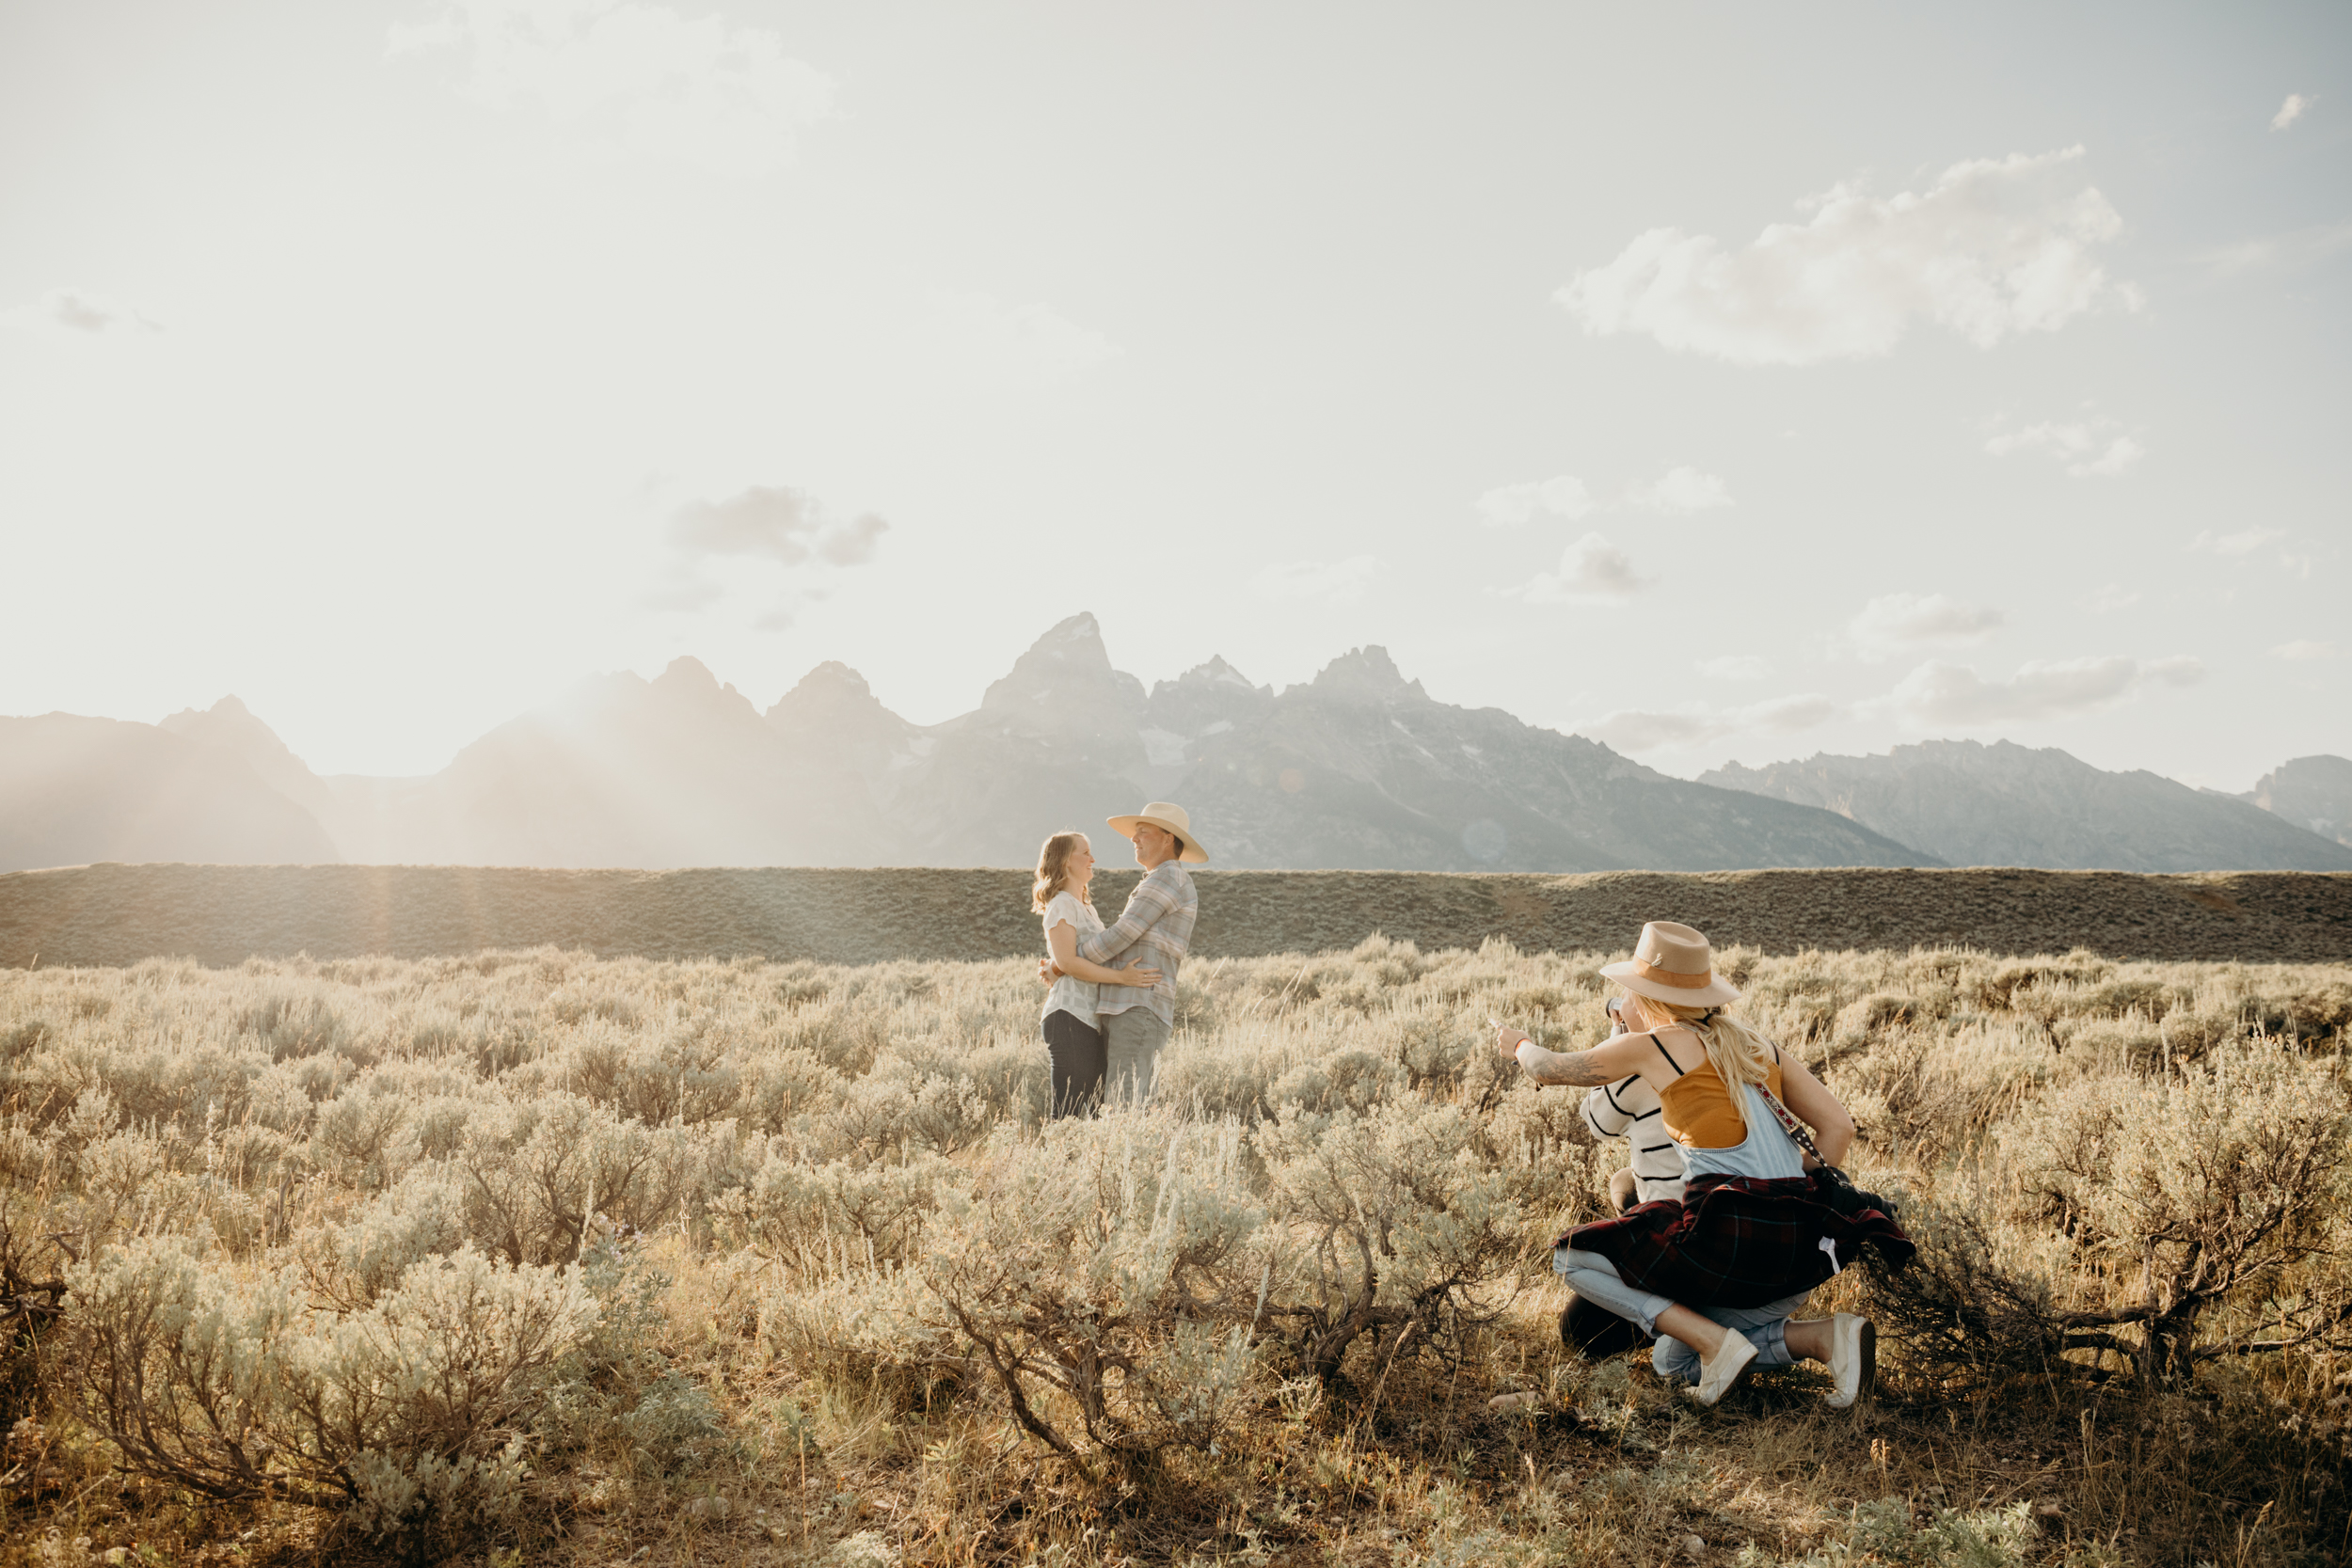 erin-wheat-co-photography-mentor-adventure-elopement-photographer-workshop-0089